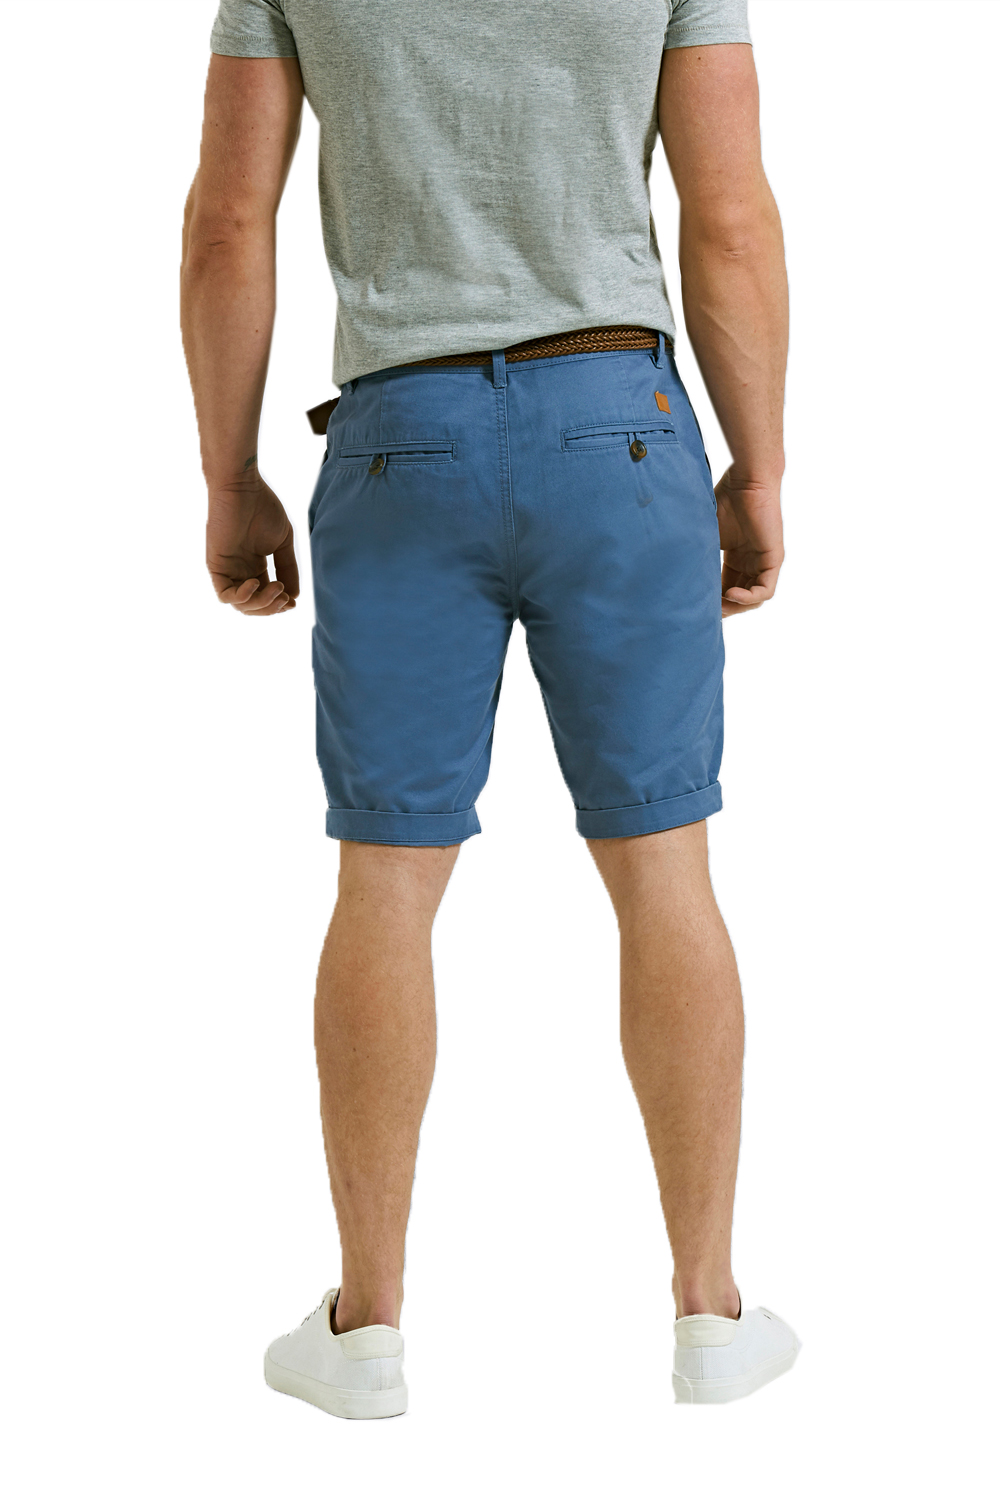 Threadbare-Mens-Slim-Fit-Belted-Chino-Shorts-Summer-Casual-Cotton-Smart-Bottoms thumbnail 10